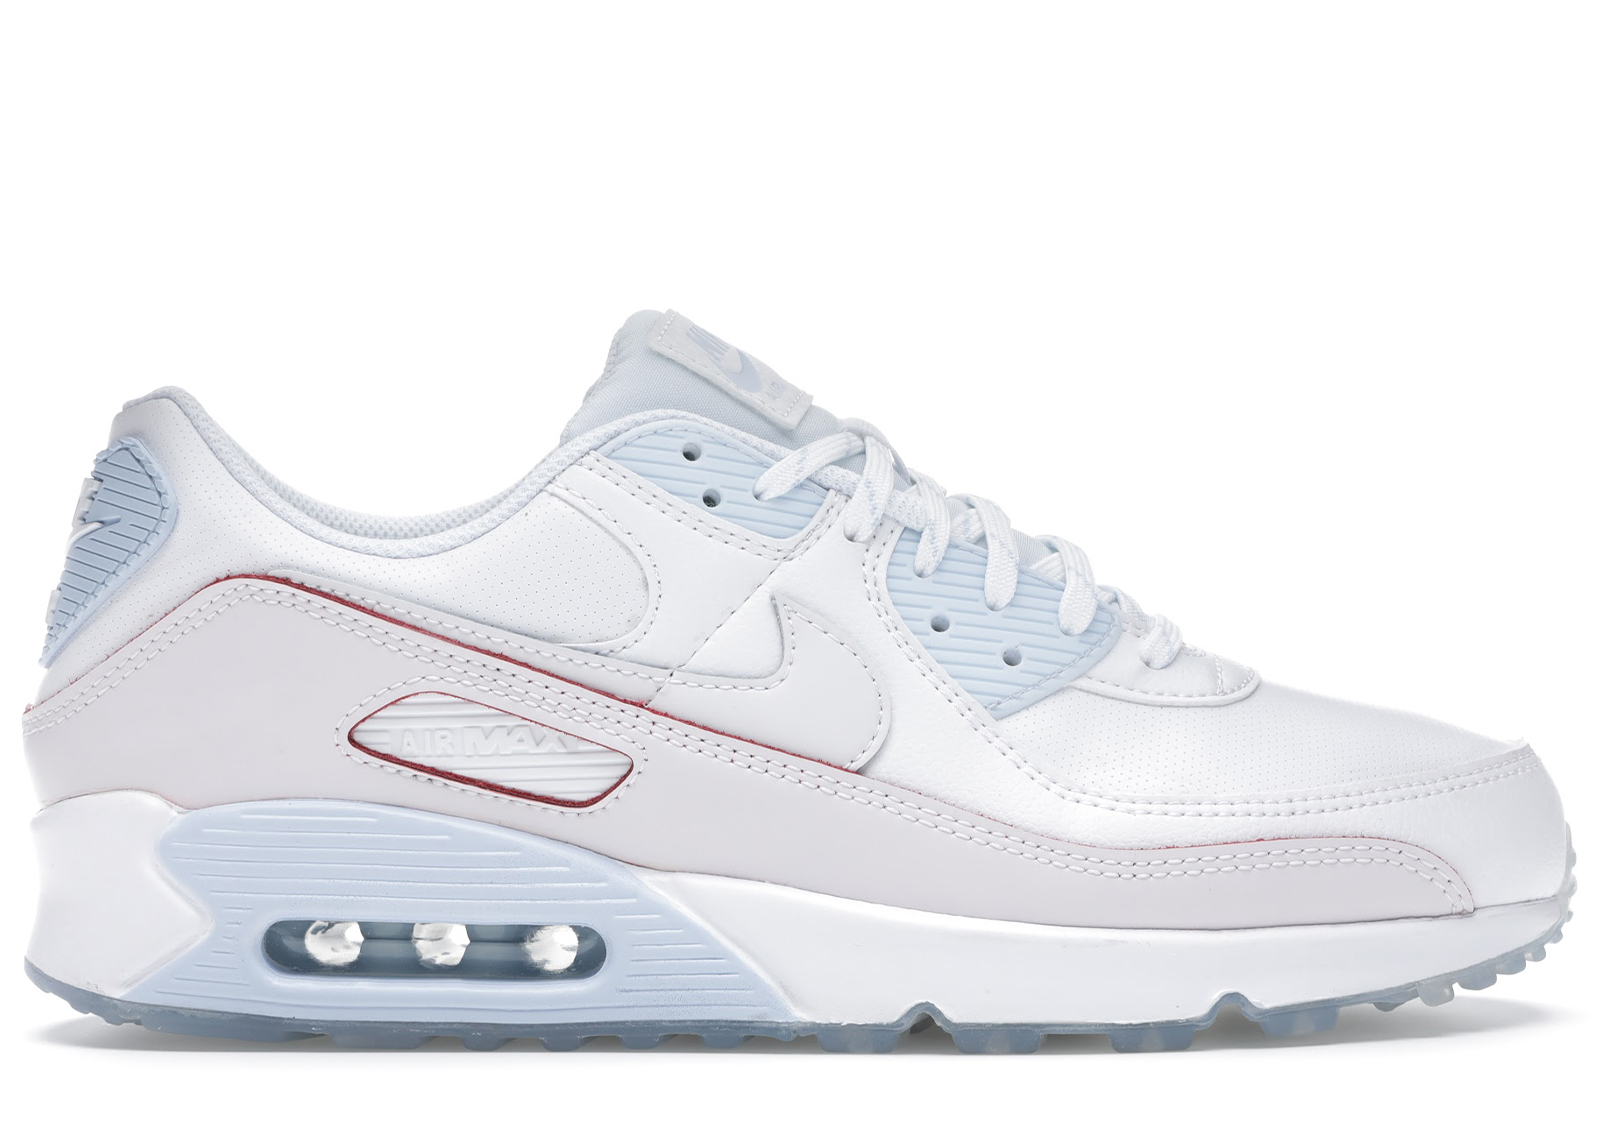 Nike Air Max 90 One of One